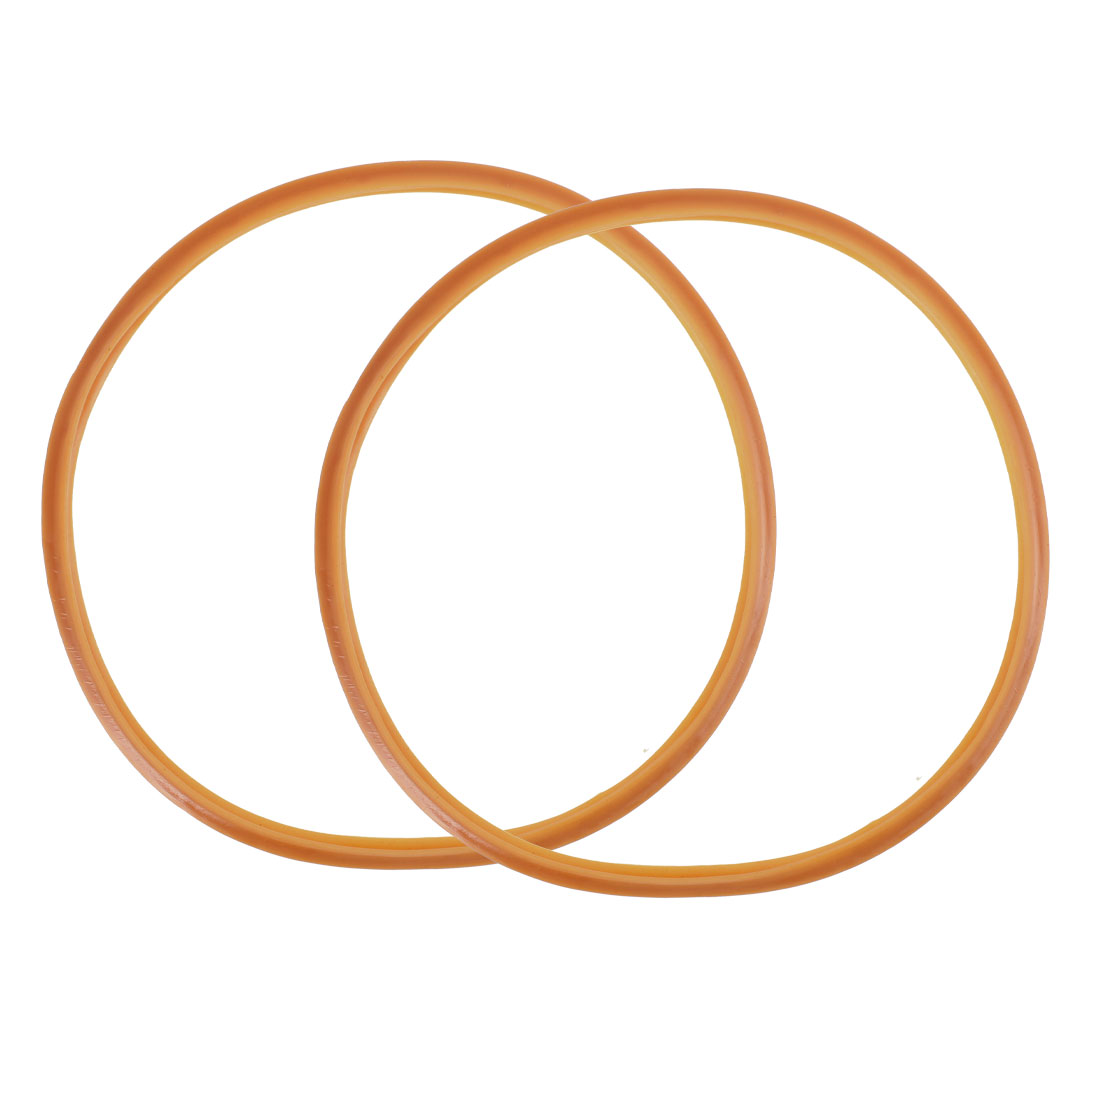 Pressure Cooker Rubber Gasket Sealing Ring 24cm Internal Dia 2pcs